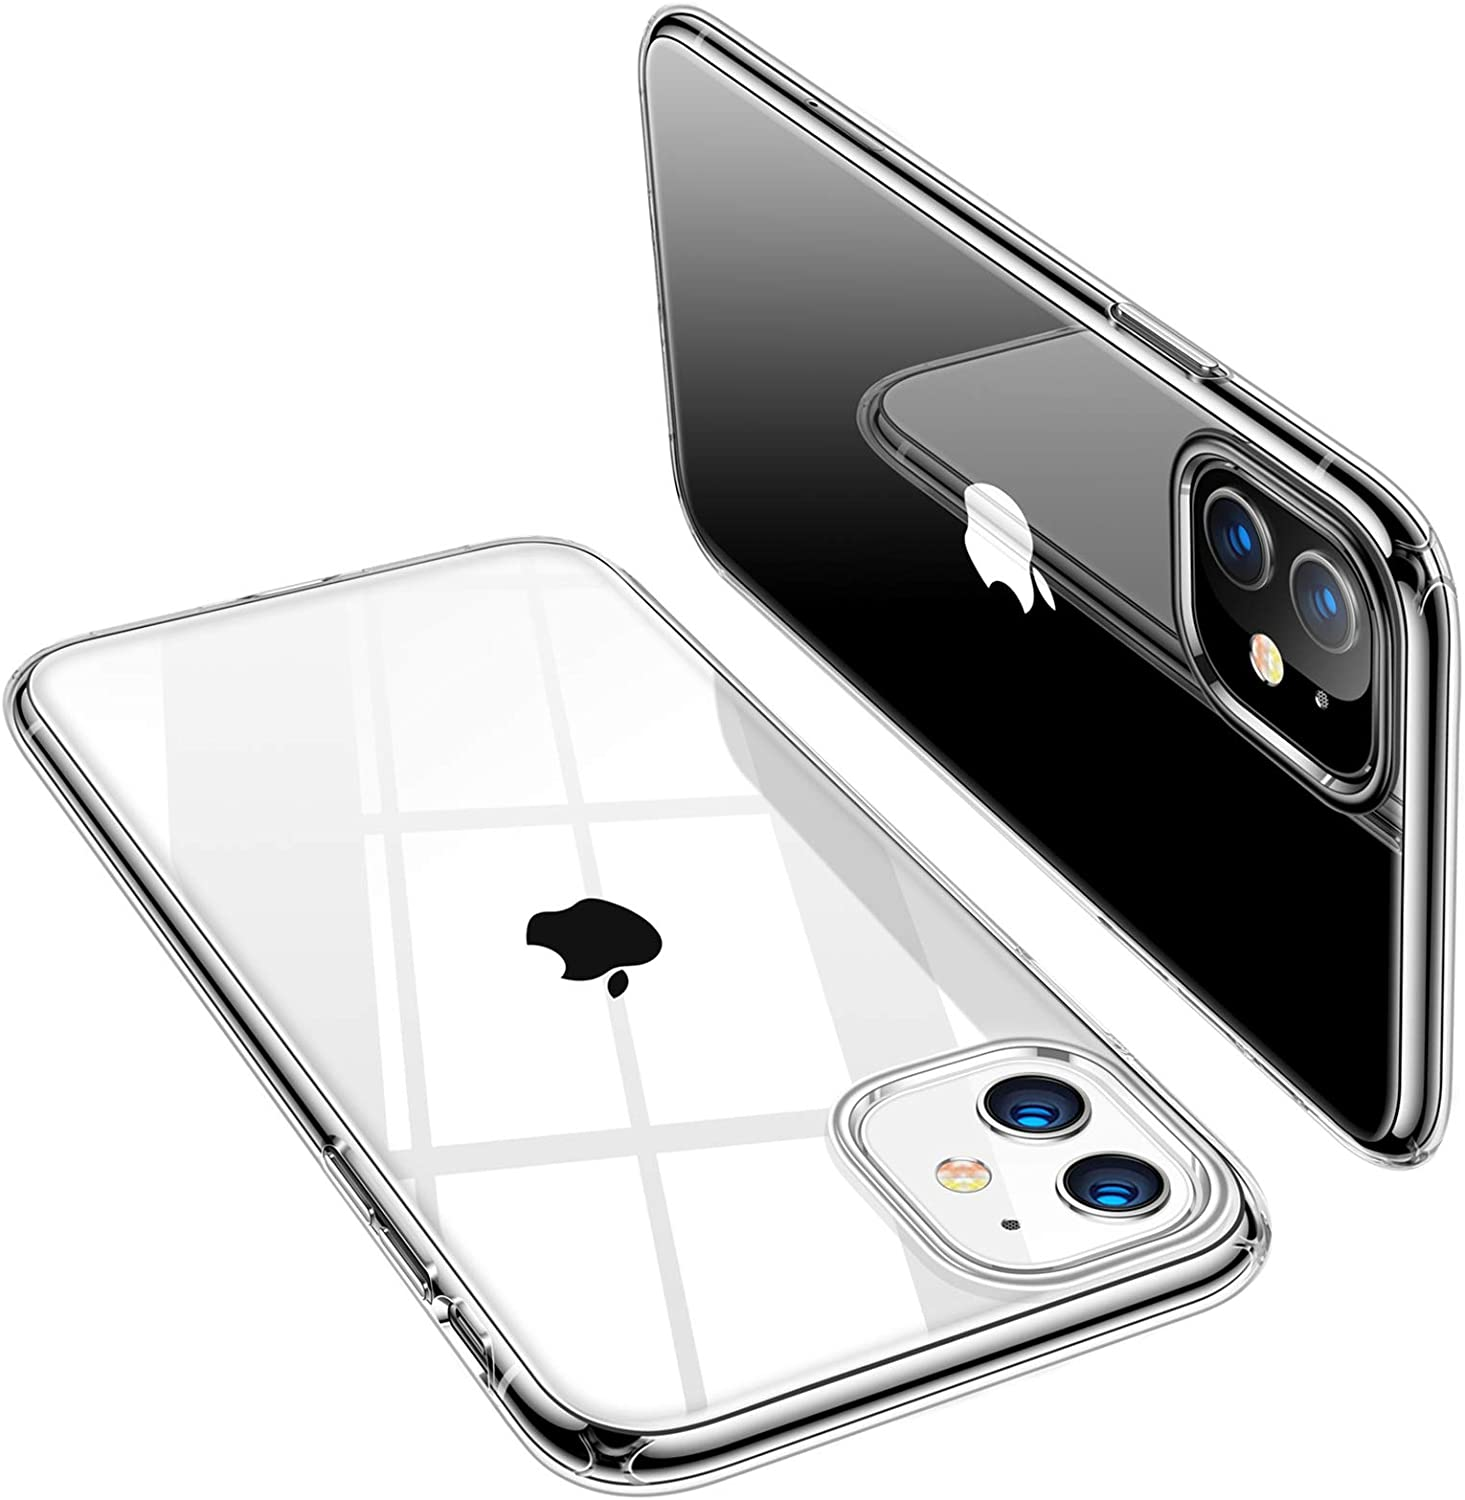 TORRAS Compatible with iPhone 11 Case, Crystal Clear iPhone 11 Cases, [Anti-Yellowing] Ultra Thin Slim Fit Shockproof Flexible TPU Rubber Phone Case for iPhone 11 6.1 inch, Crystal Clear